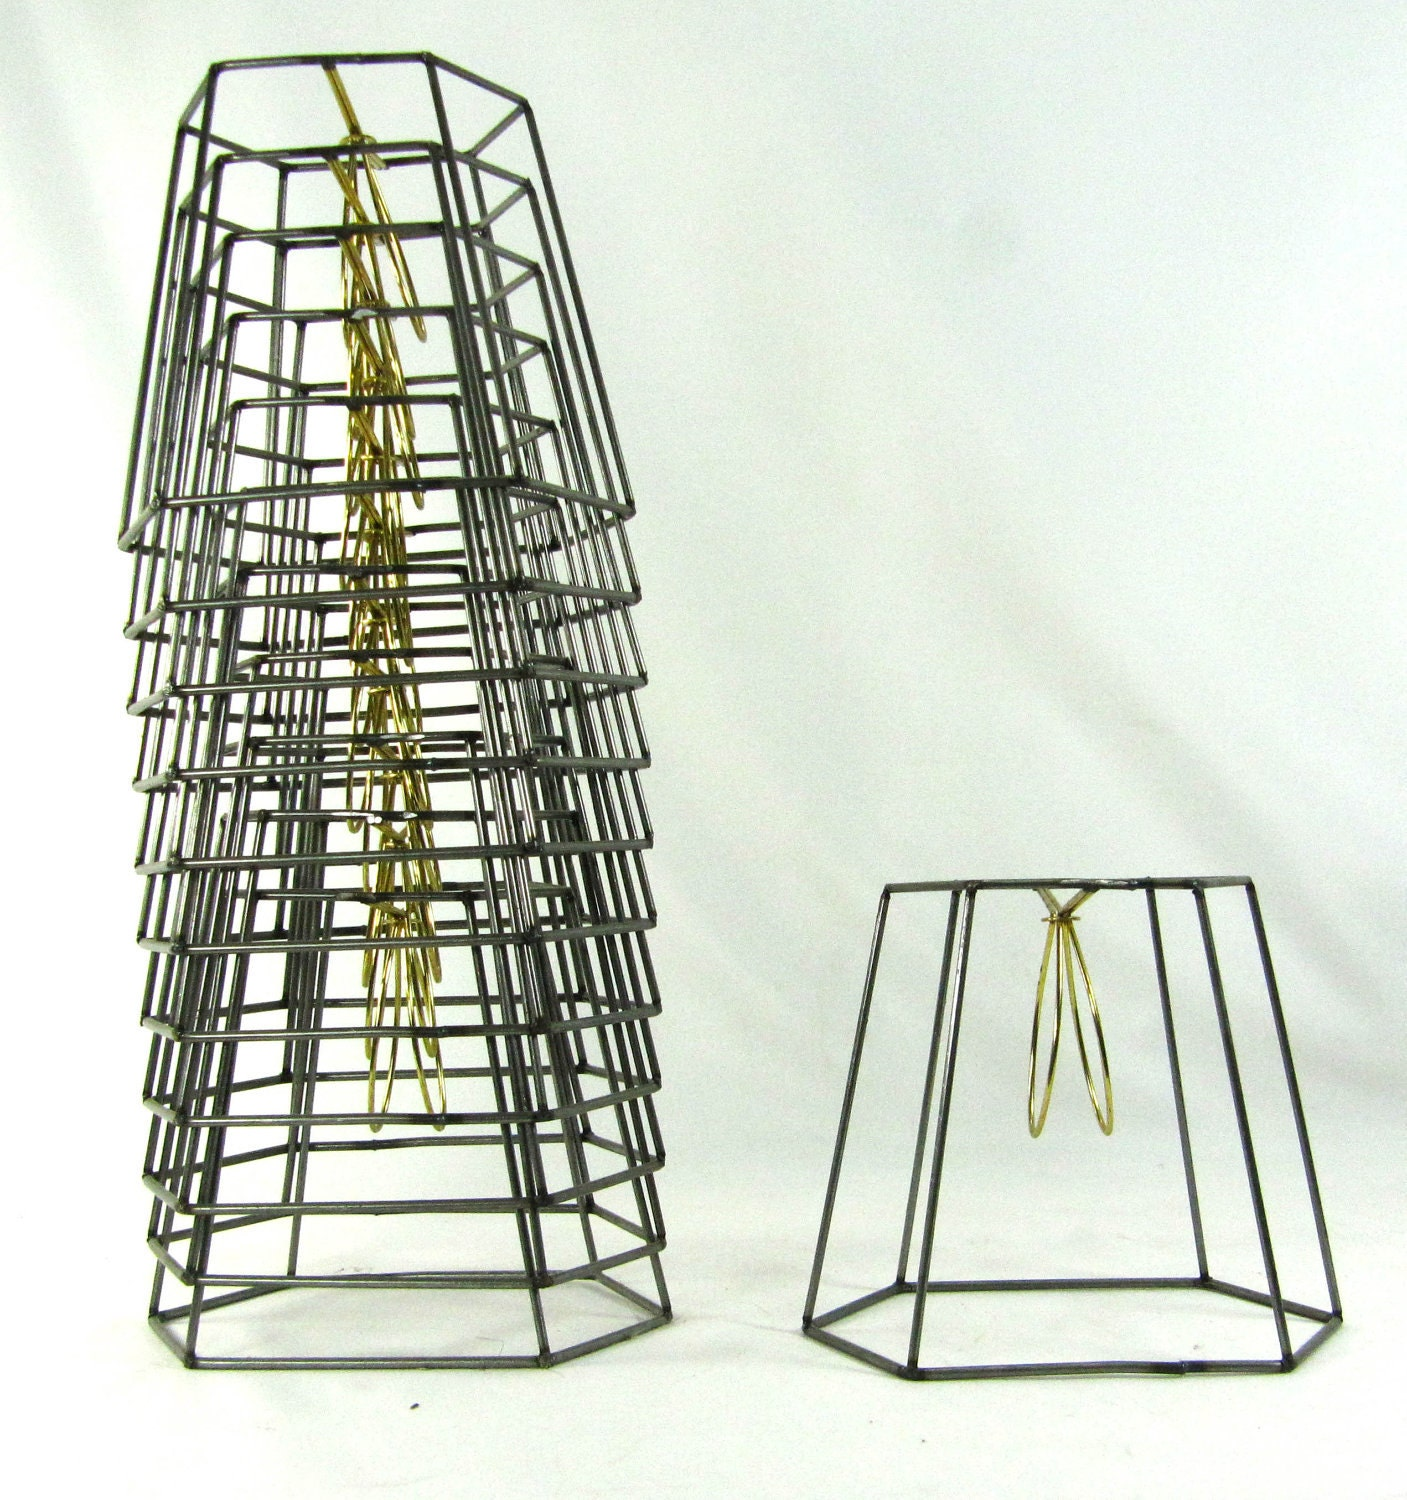 12 Lamp Shade Frames Table Wire Hand Made Nyc By Judislamps